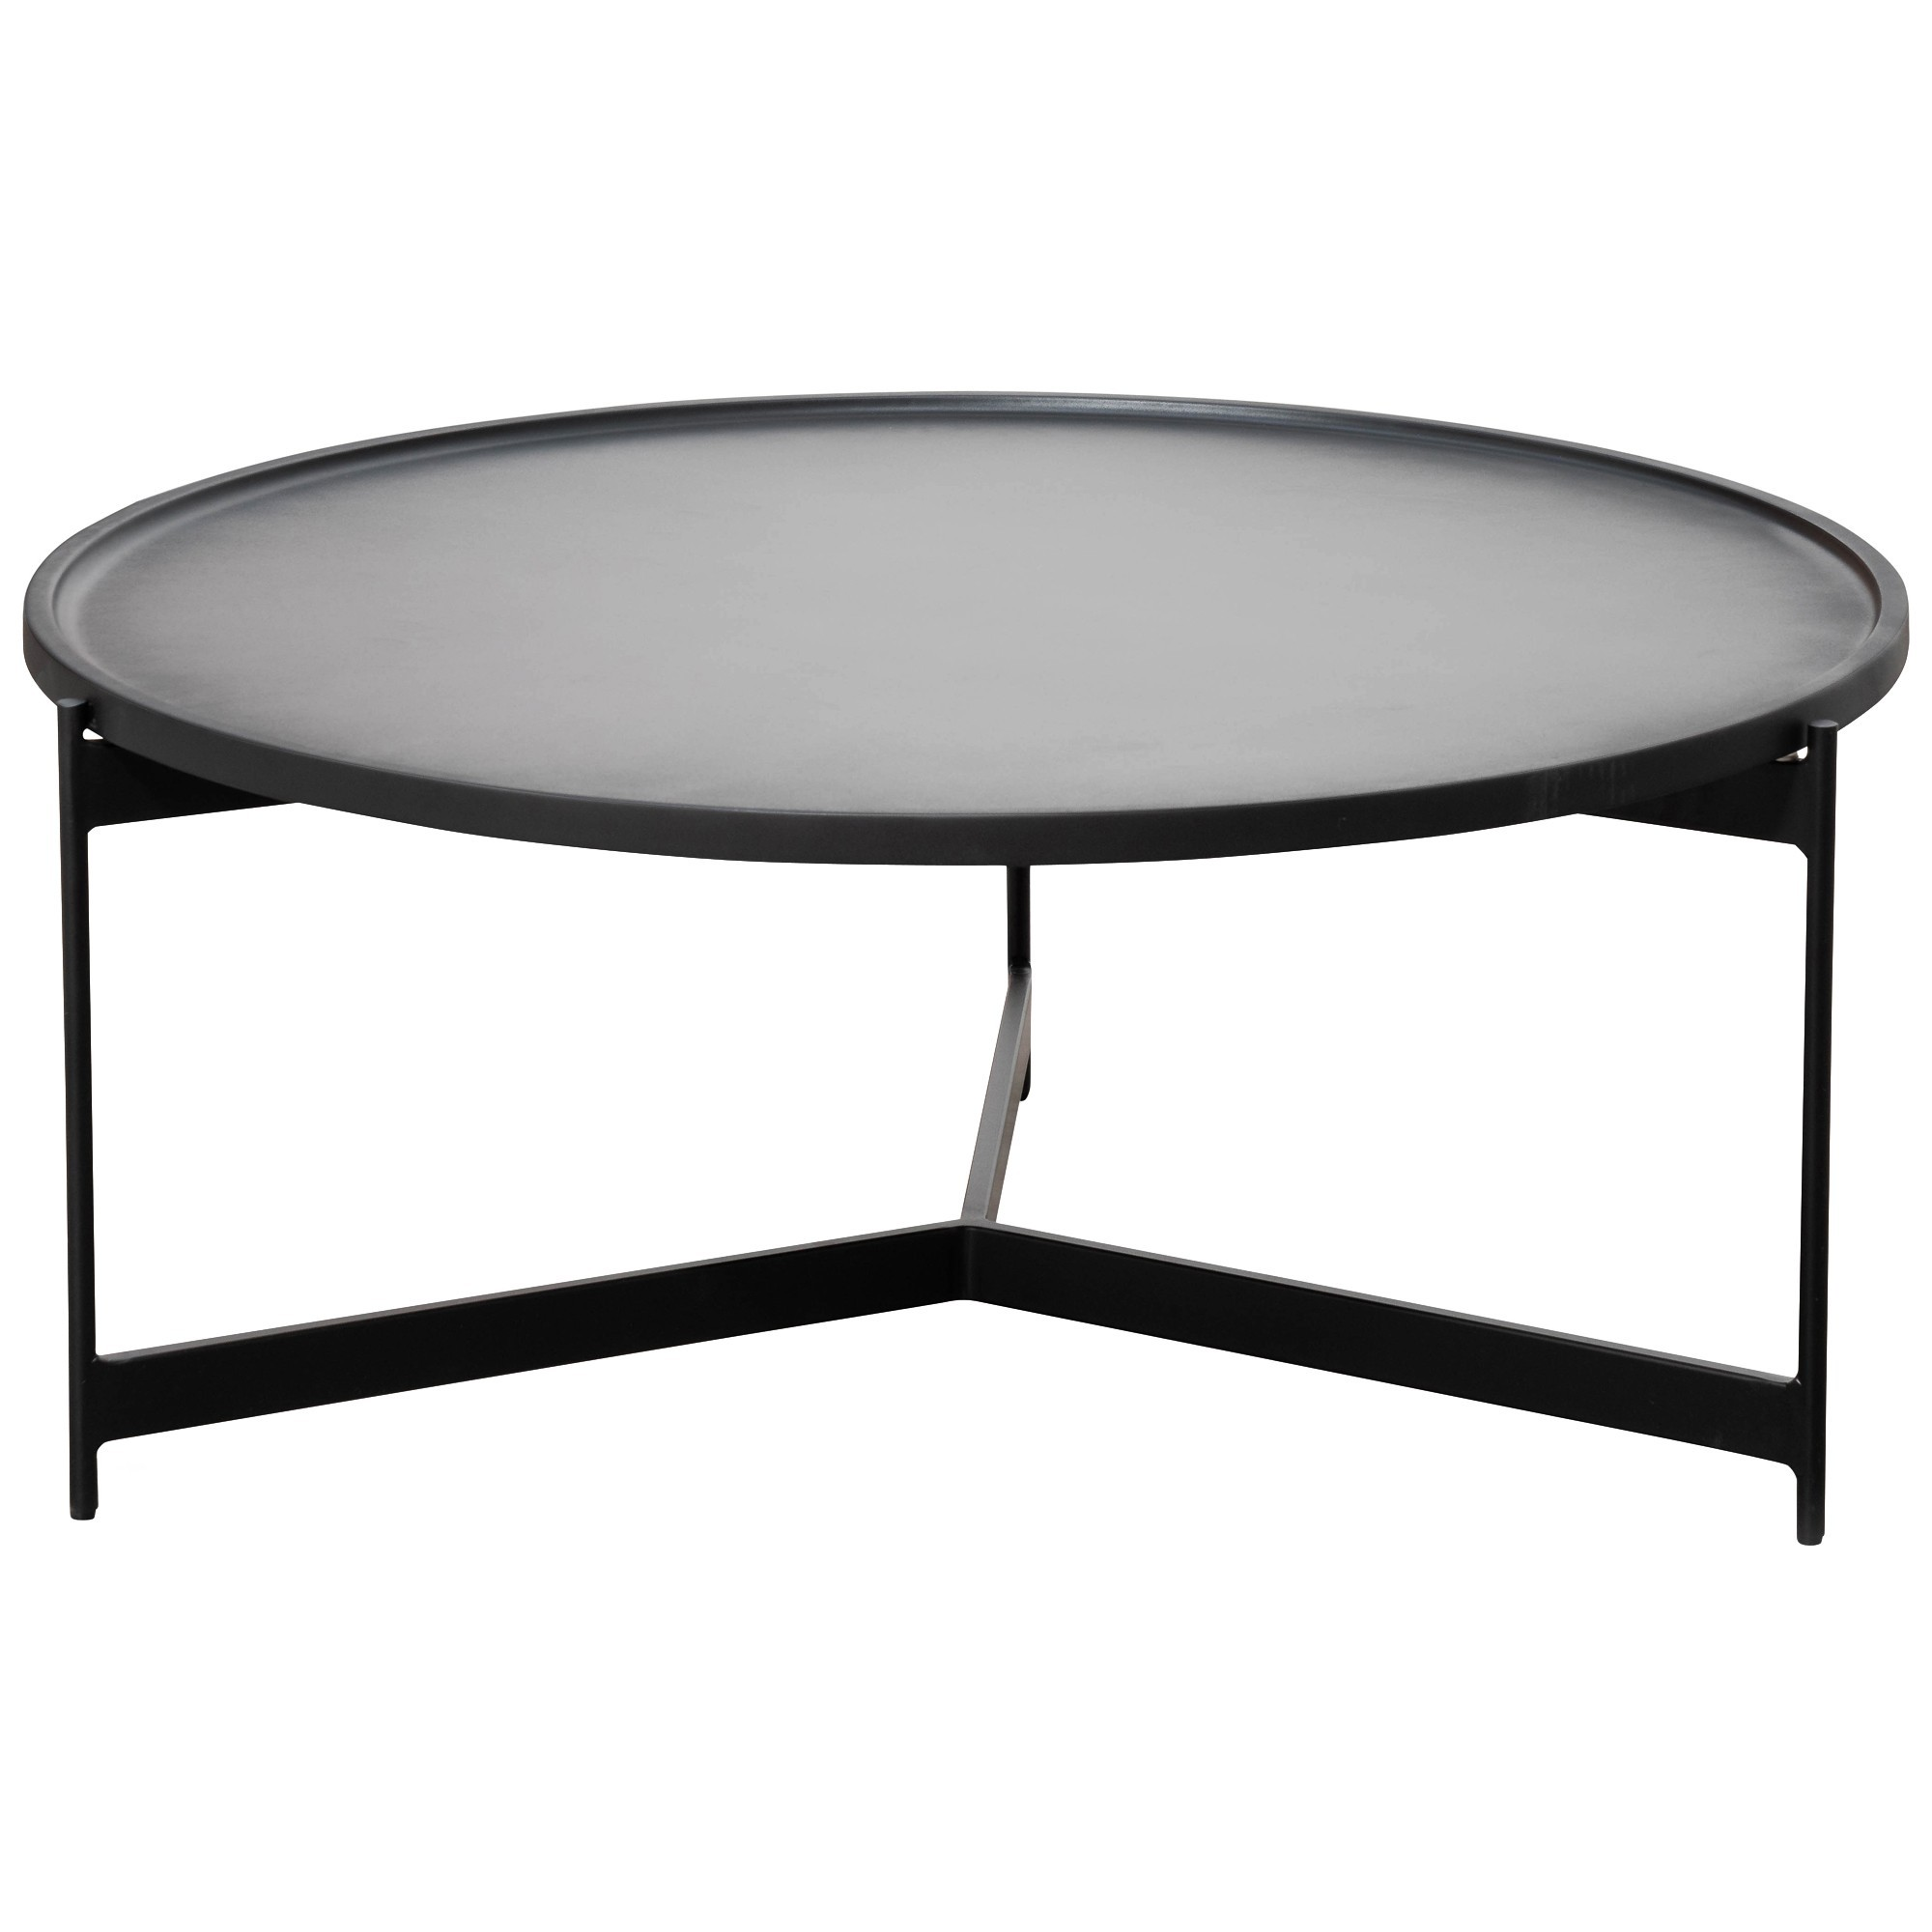 Prevelly Round Tray Top Coffee Table, 90cm